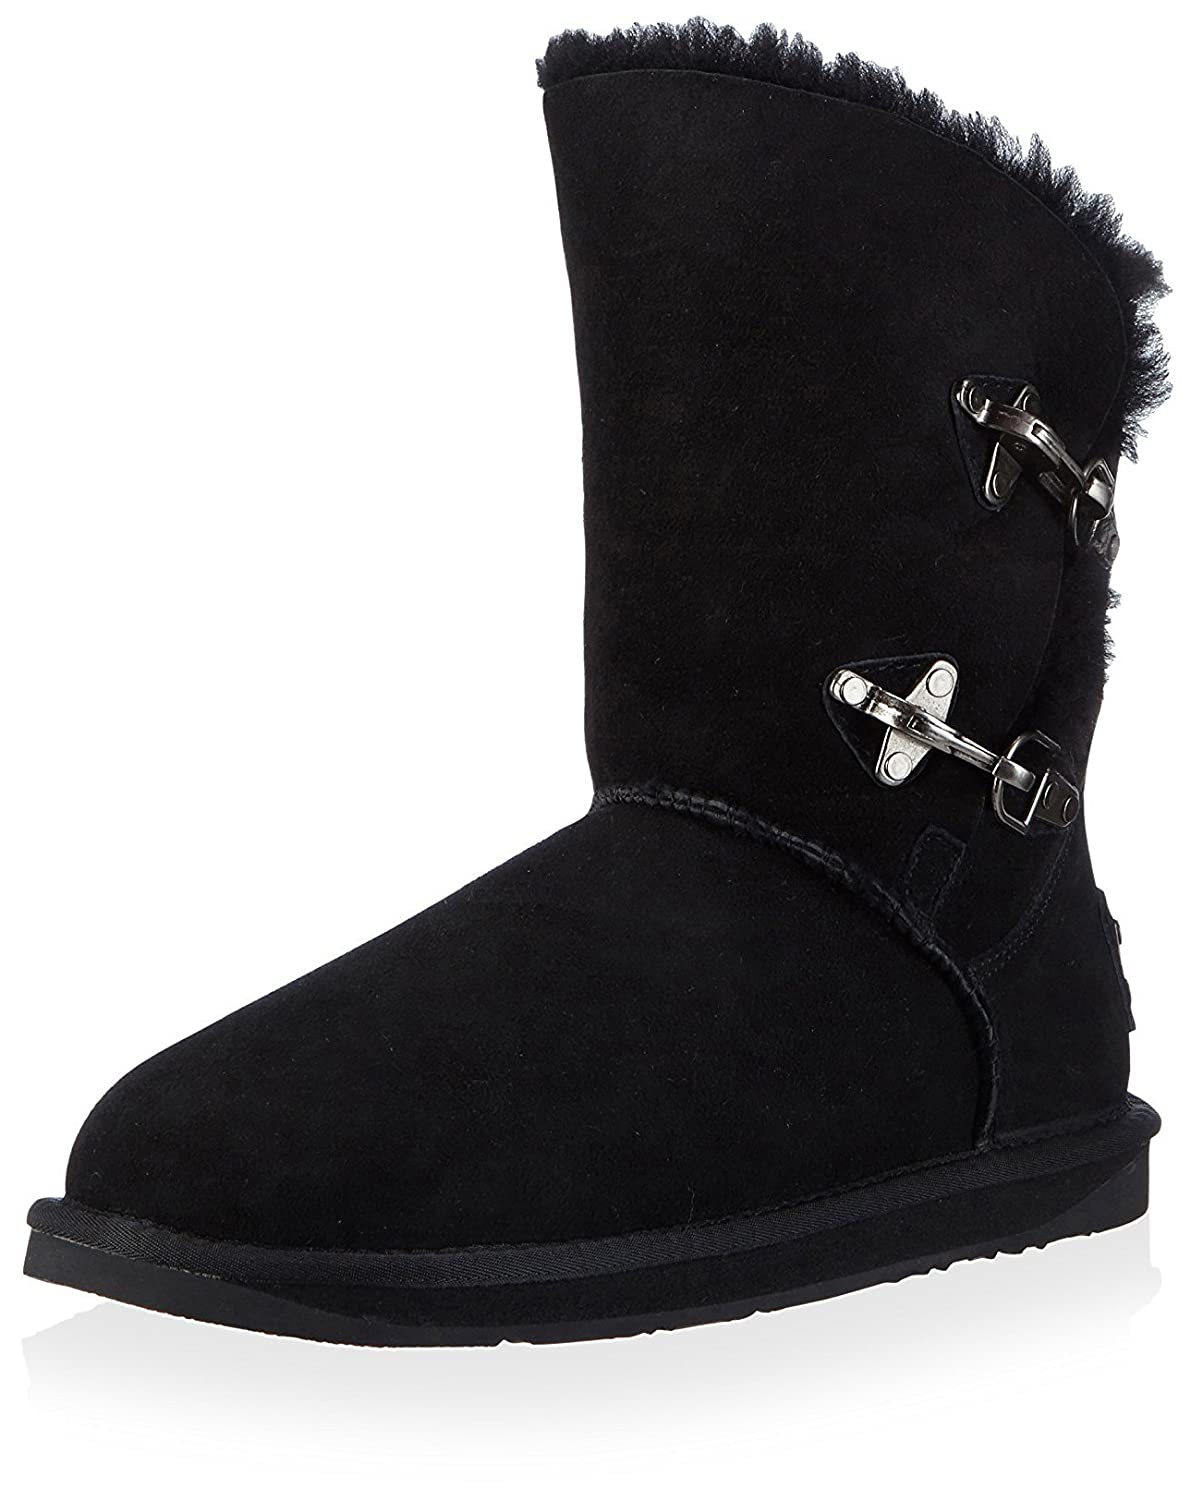 Australia Luxe Collective Women's Reneade Boot B010T3A4TY 39 M EU/8 M US|Black